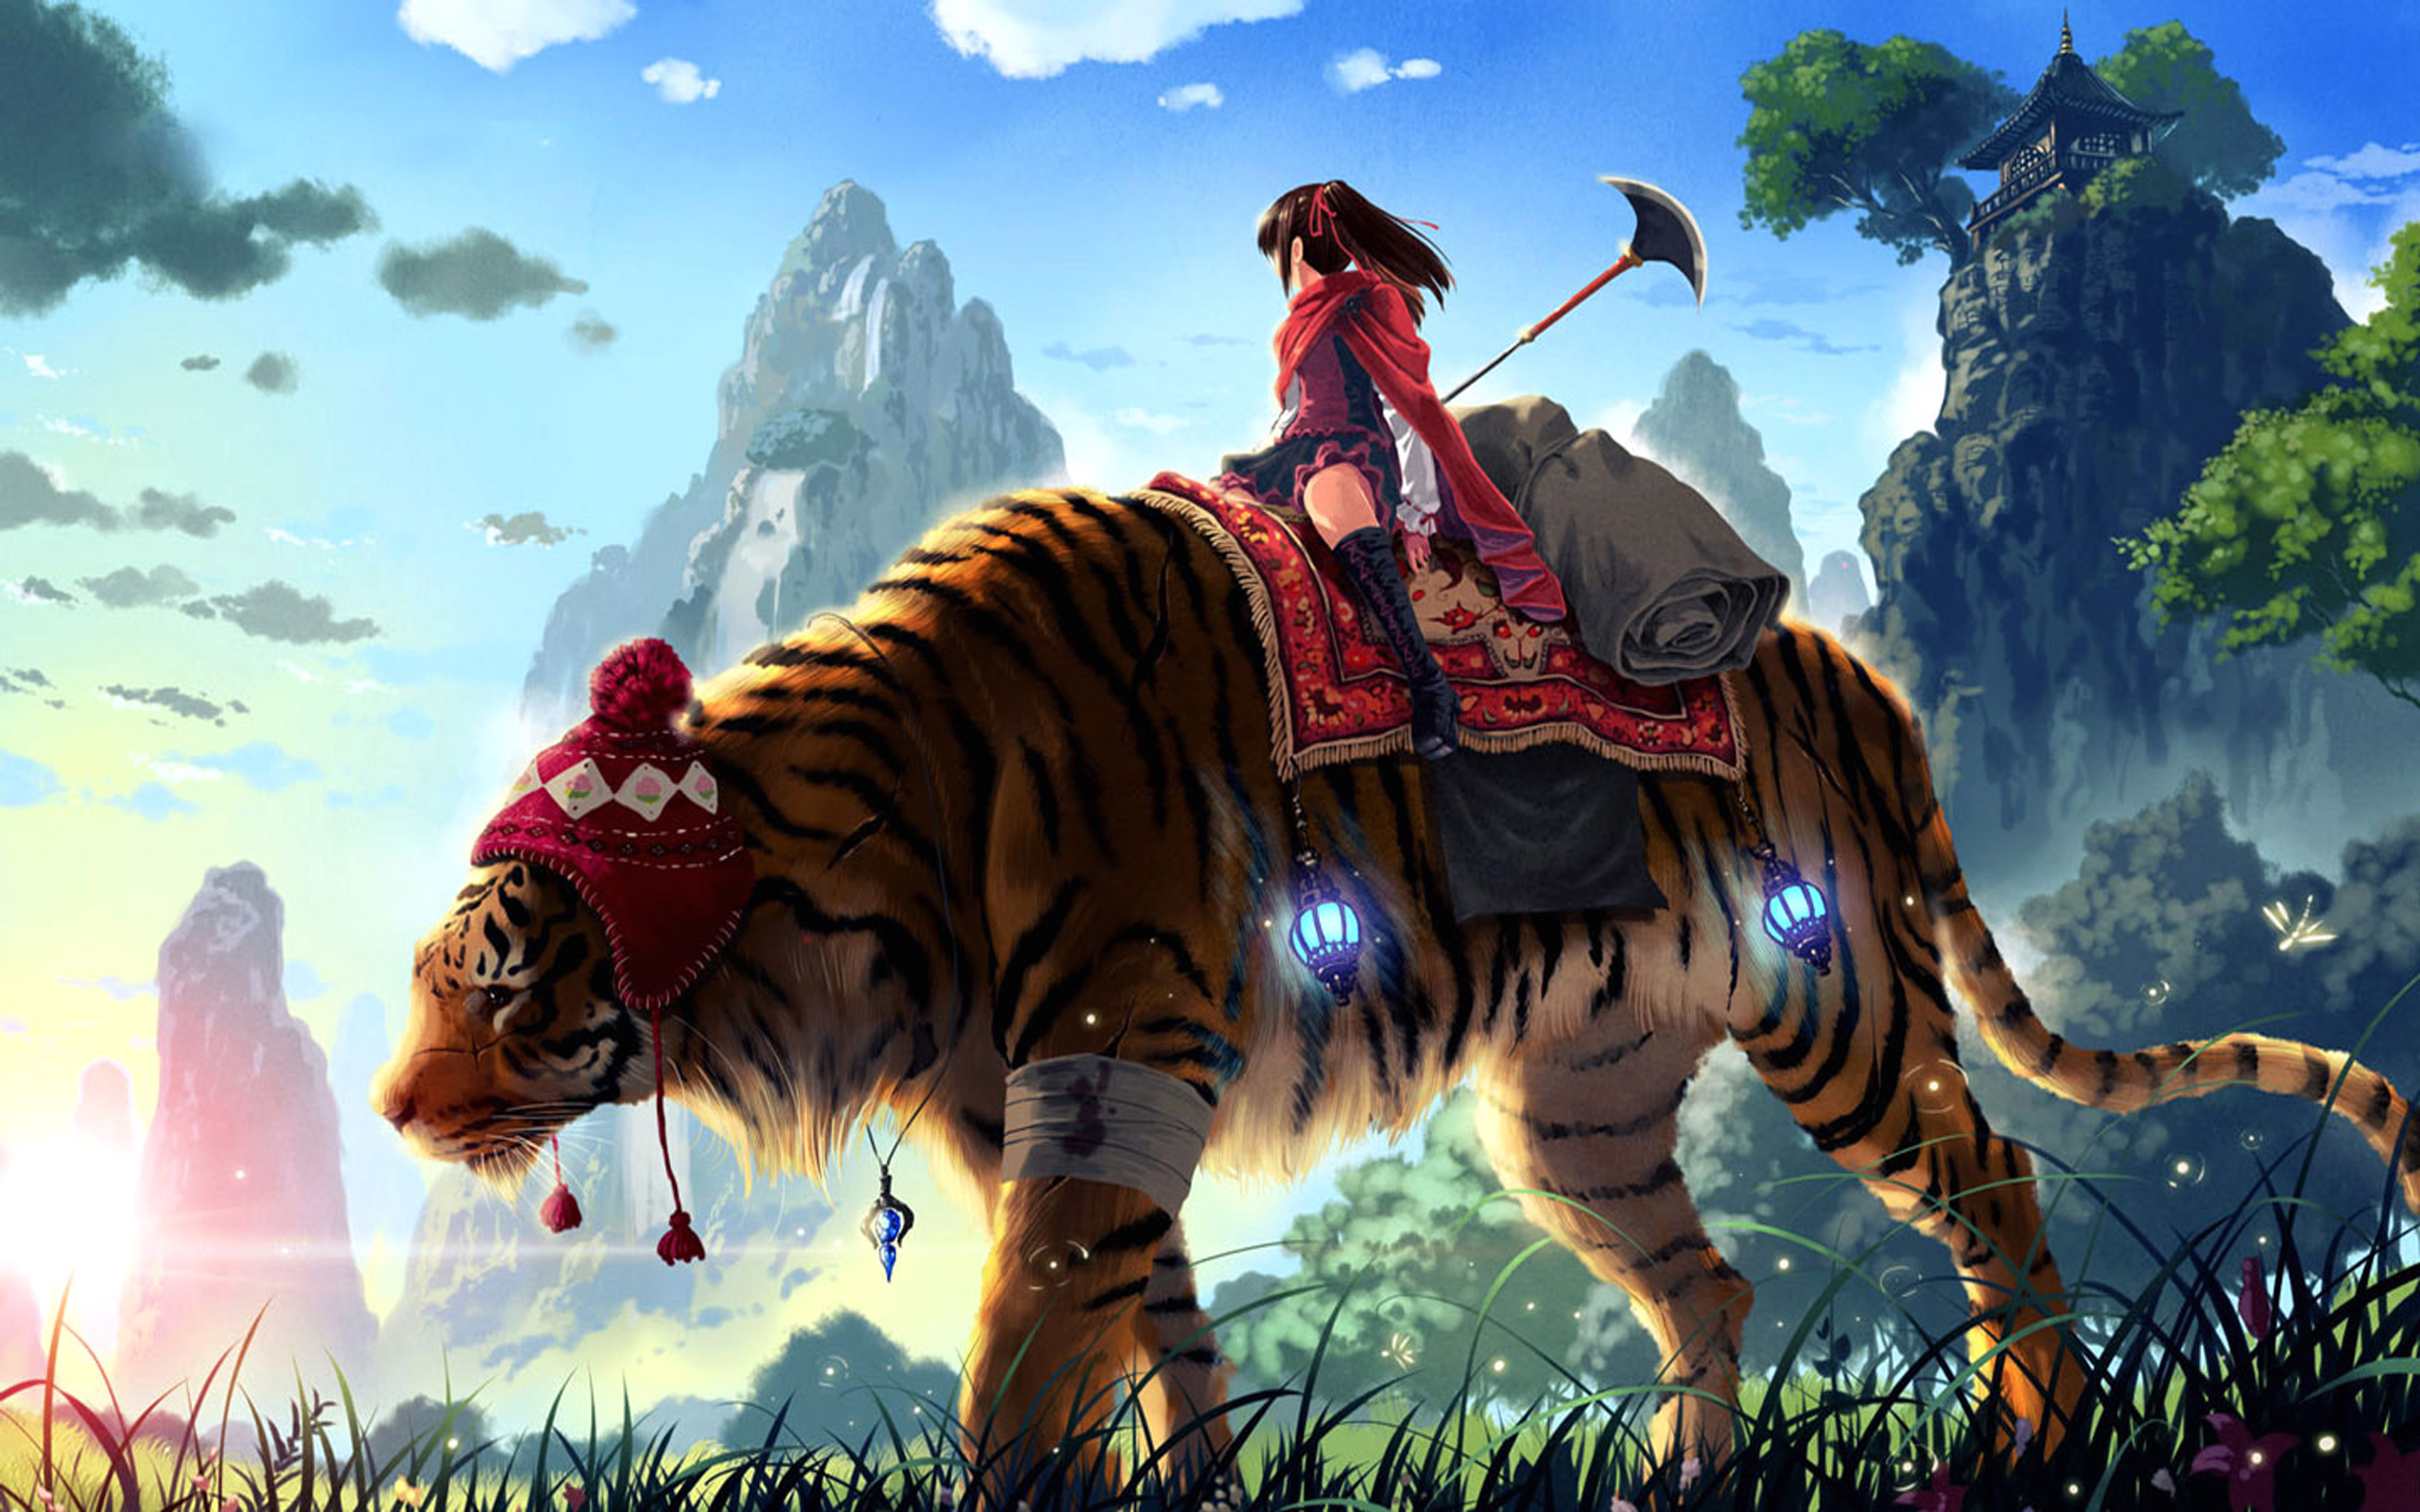 Anime - Unknown  - Girl - Tiger - Journey Wallpaper